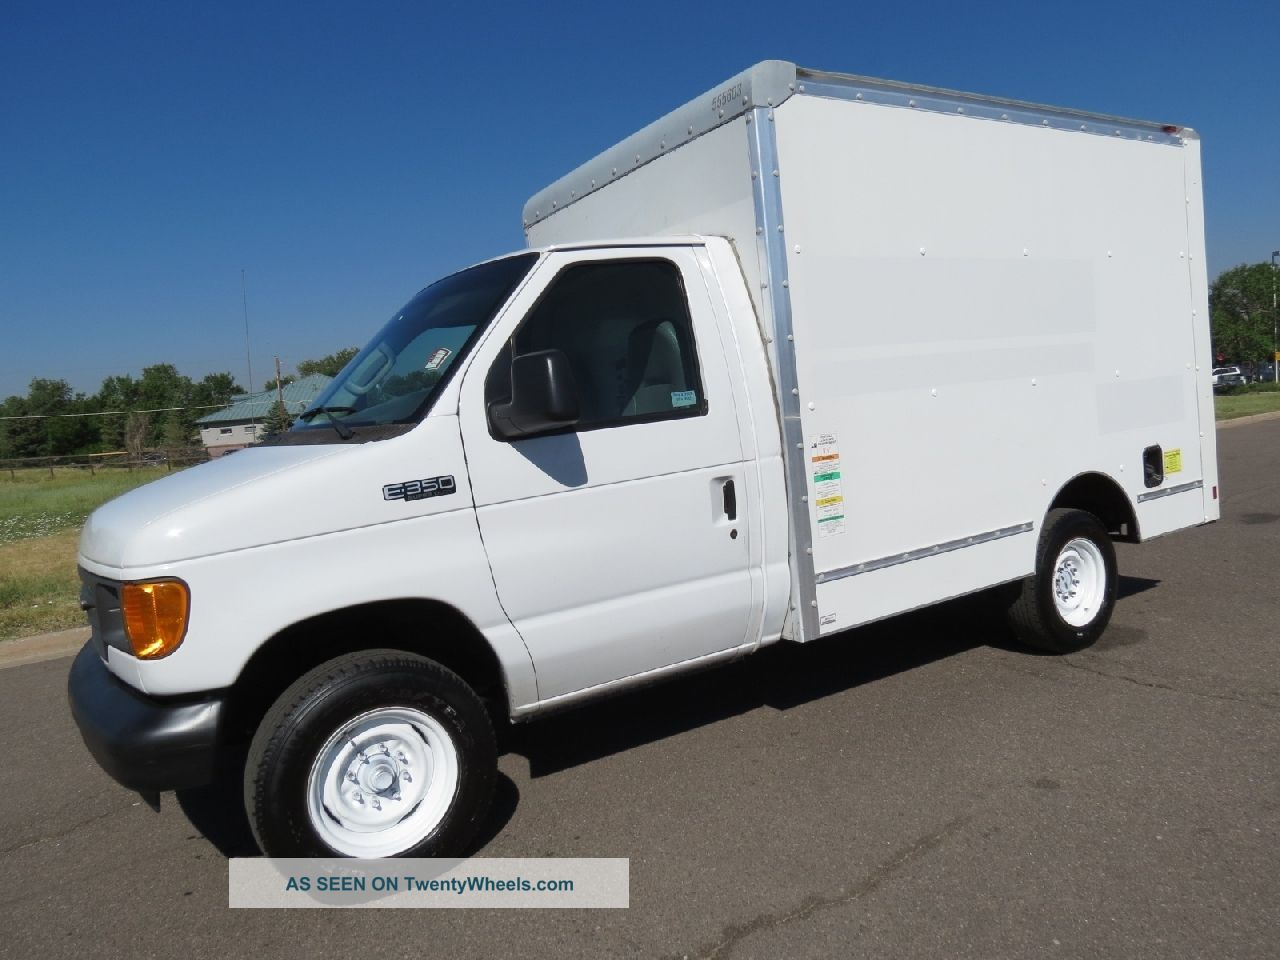 2005 Ford E350 Service Utility Work Van Delivery Box Truck Ford Box Truck Wiring Diagrams on ford alternator wiring diagram, ford f-150 7-way wiring diagram, ford truck wiring harness, ford towing package wiring diagram, ford radio wiring diagram, ford schematics, ford wiring color codes, ford f650 wiring diagram, 1996 ford f 150 diagrams, ford excursion wiring diagram, ford bronco wiring diagram, ford truck electrical diagrams, ford voltage regulator diagram, ford truck brake diagrams, ford e350 wiring diagram, ford explorer wiring diagram, ford econoline wiring-diagram, ford think wiring diagram, ford l9000 wiring-diagram, ford f-250 wiring diagram,